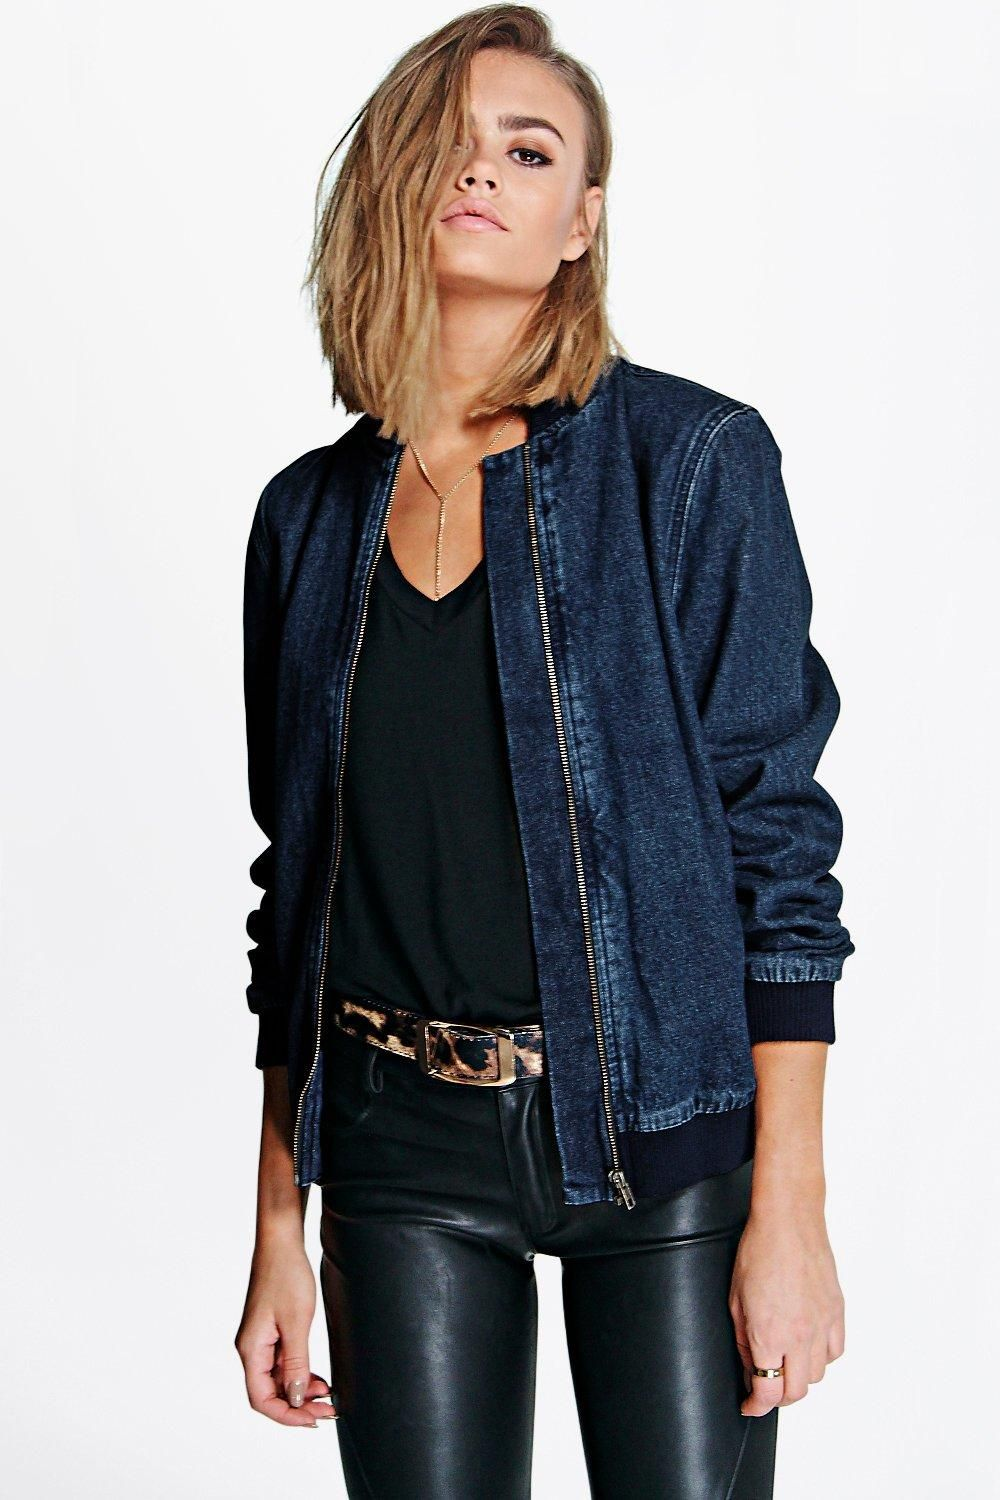 17 best ideas about Denim Bomber Jacket on Pinterest | Jumpers ...